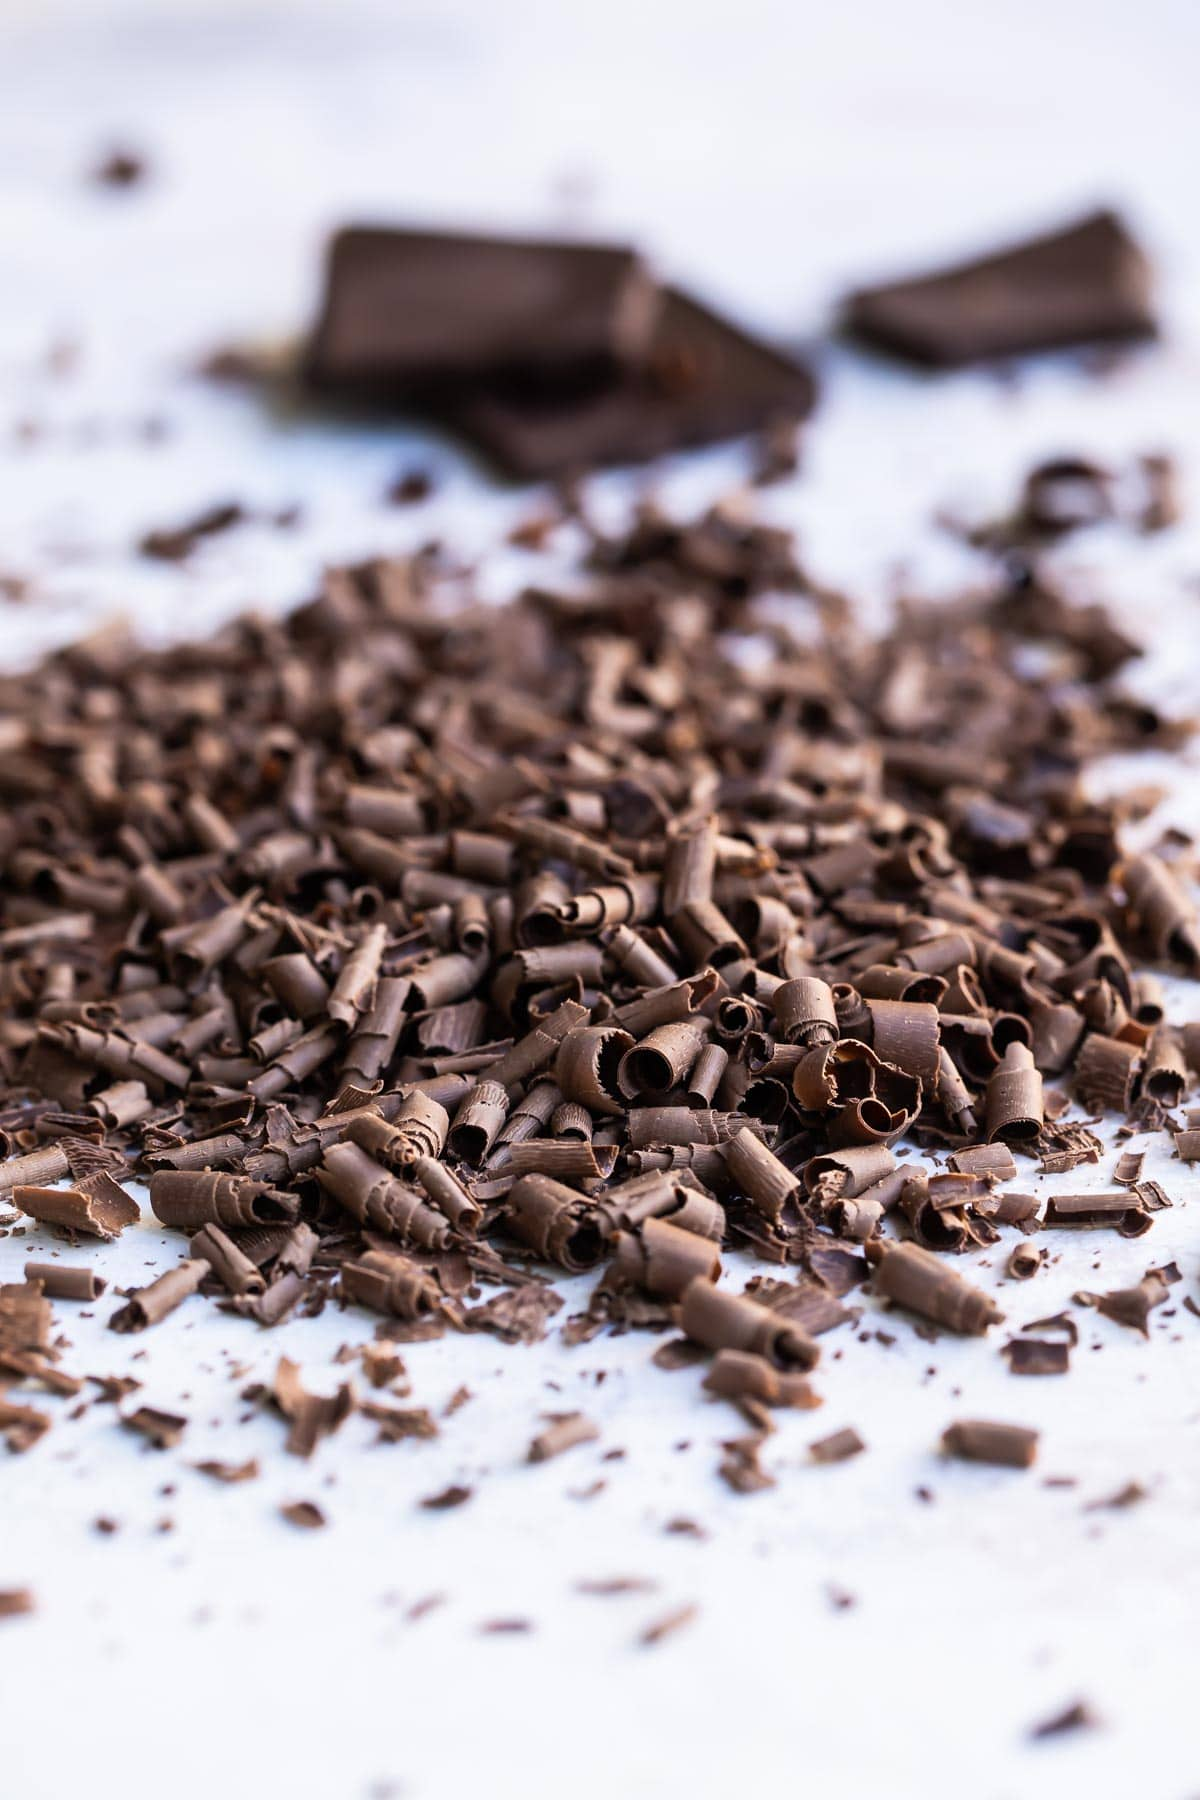 A pile of chocolate curls.